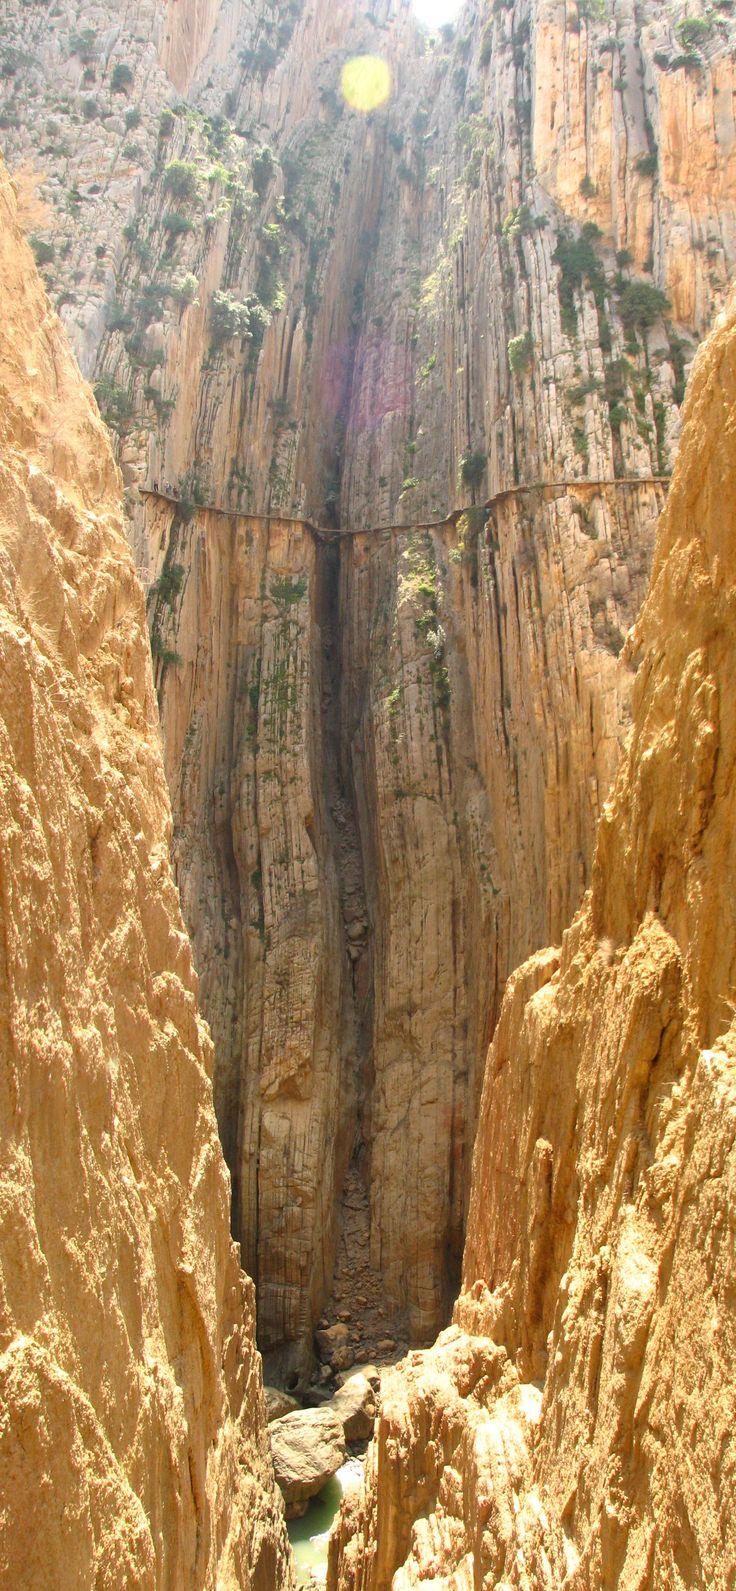 Not a walk yours truly will be making!  Too scary!  El Camino del Rey (King's pathway) - Málaga, Spain. The walkway is one metre (3 feet and 3 inches) in width, and rises over 100 metres (350 feet) above the river below.